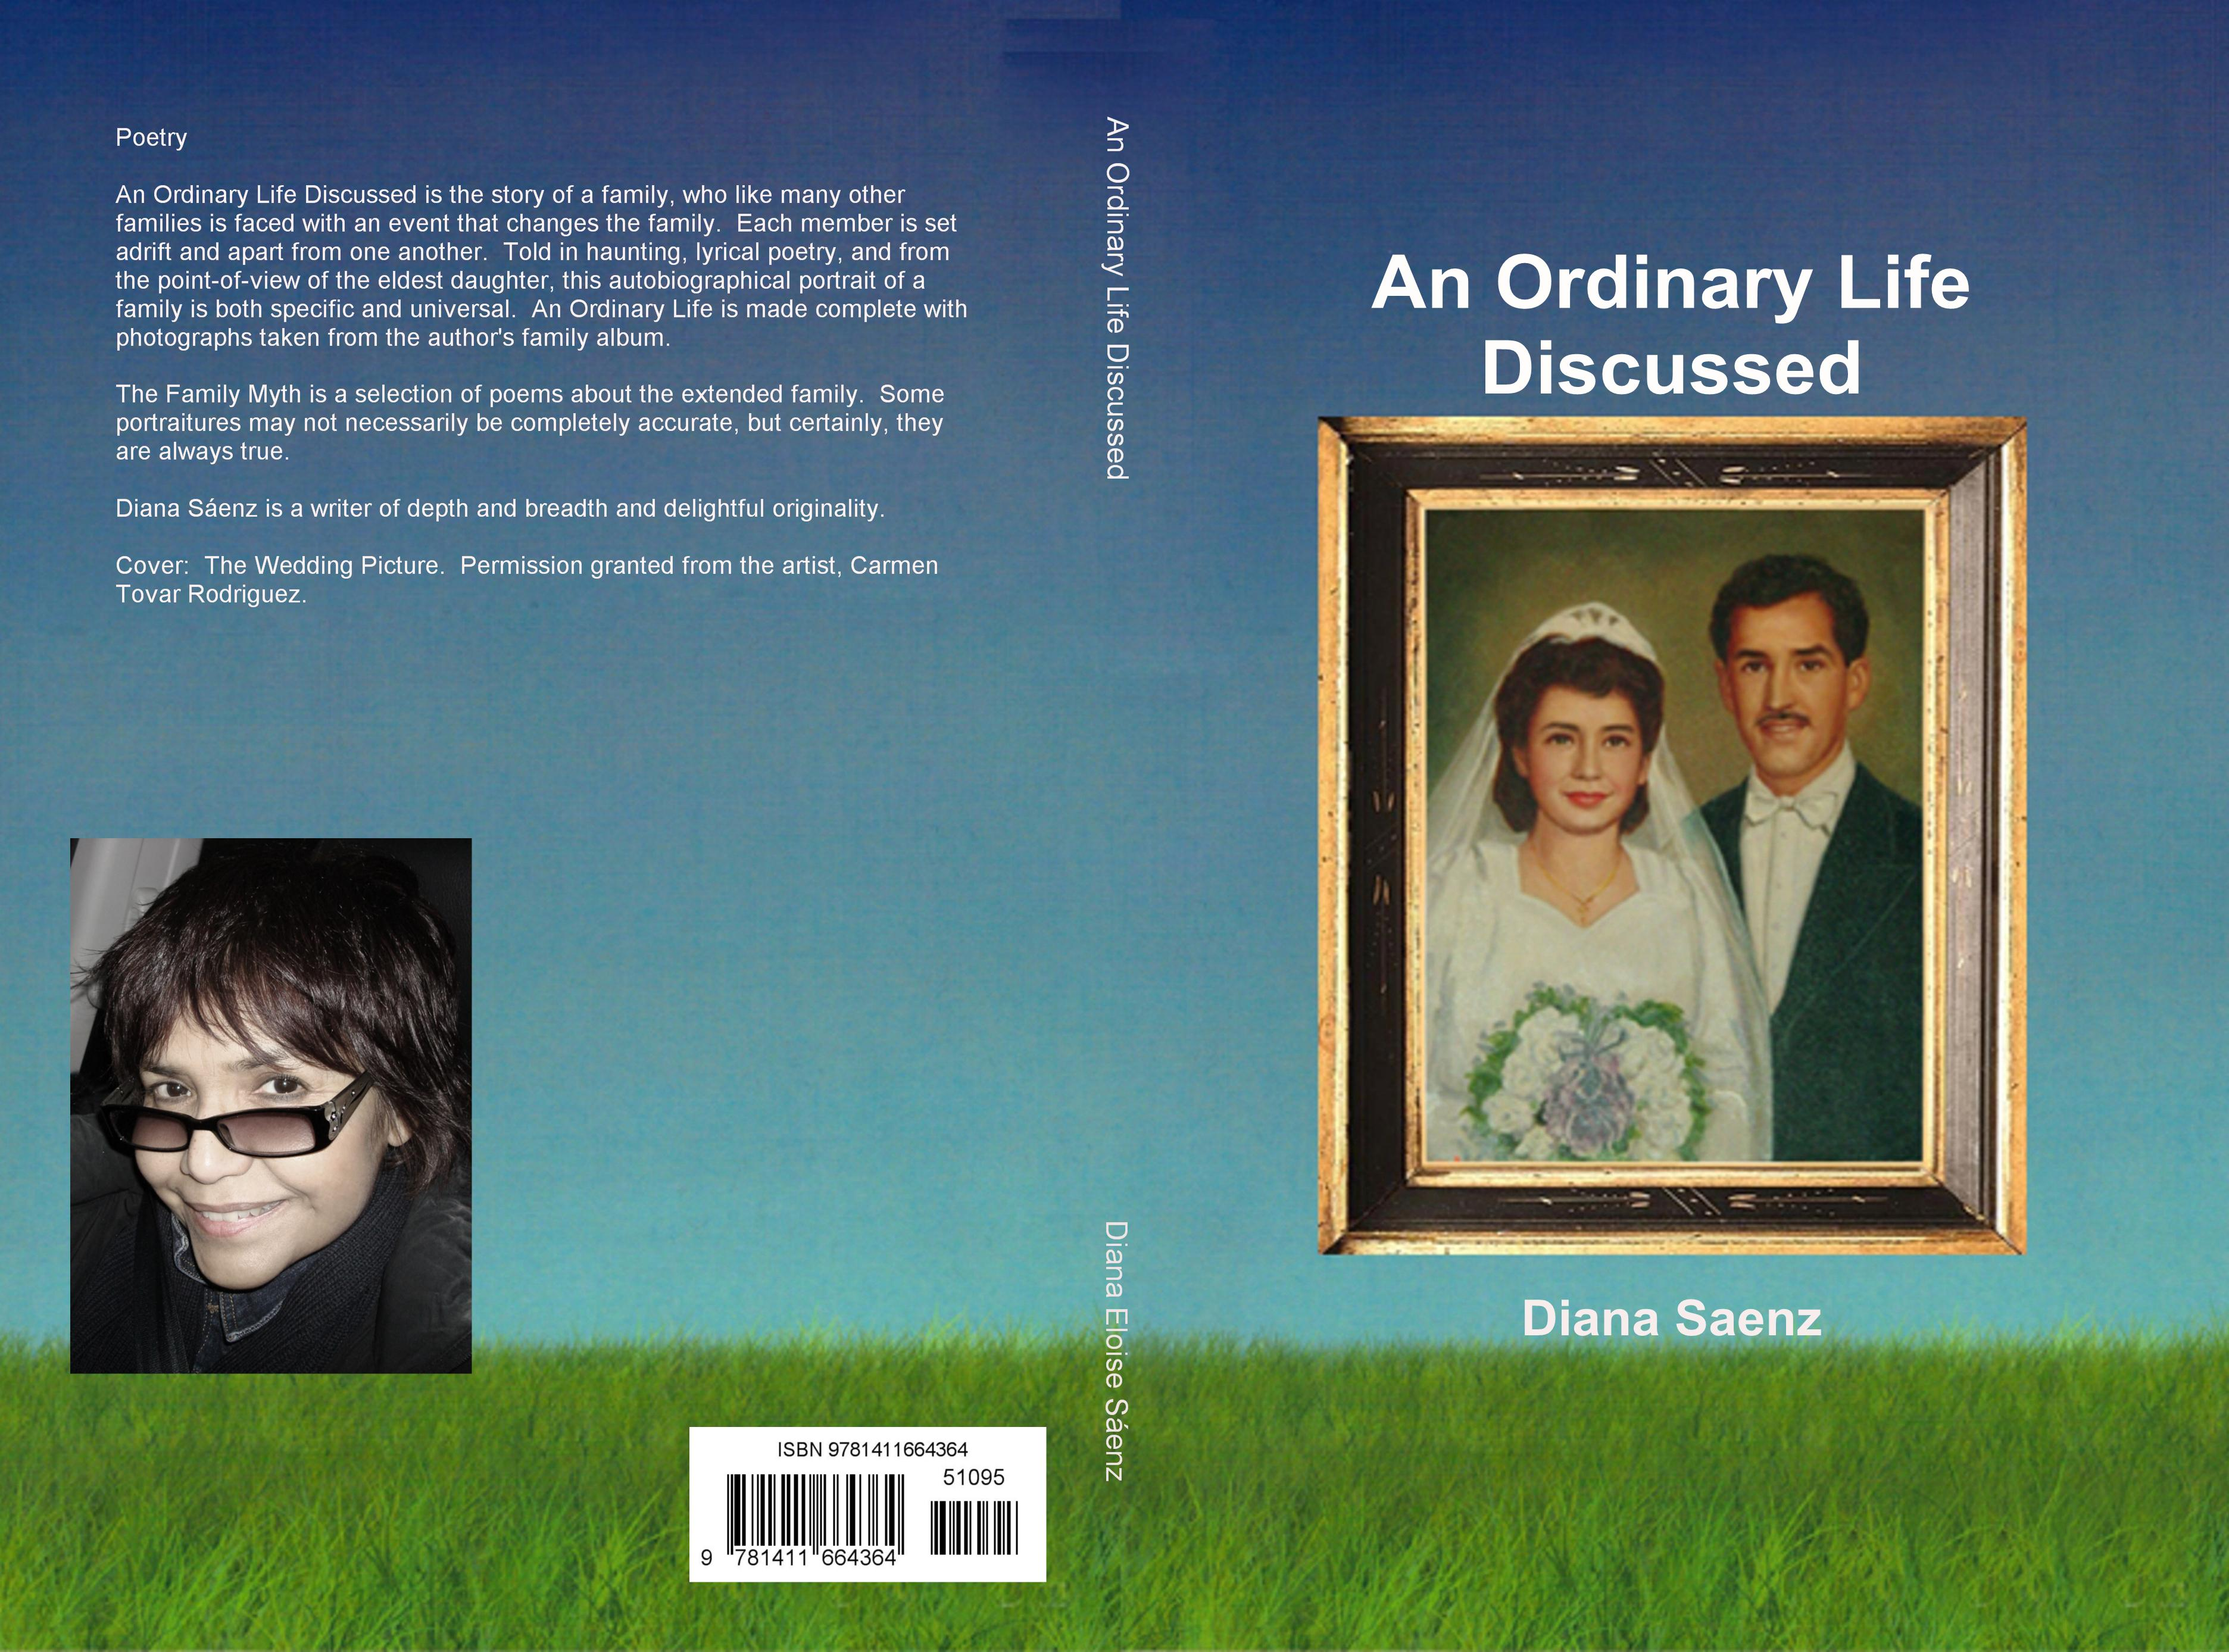 An Ordinary Life Discussed cover image